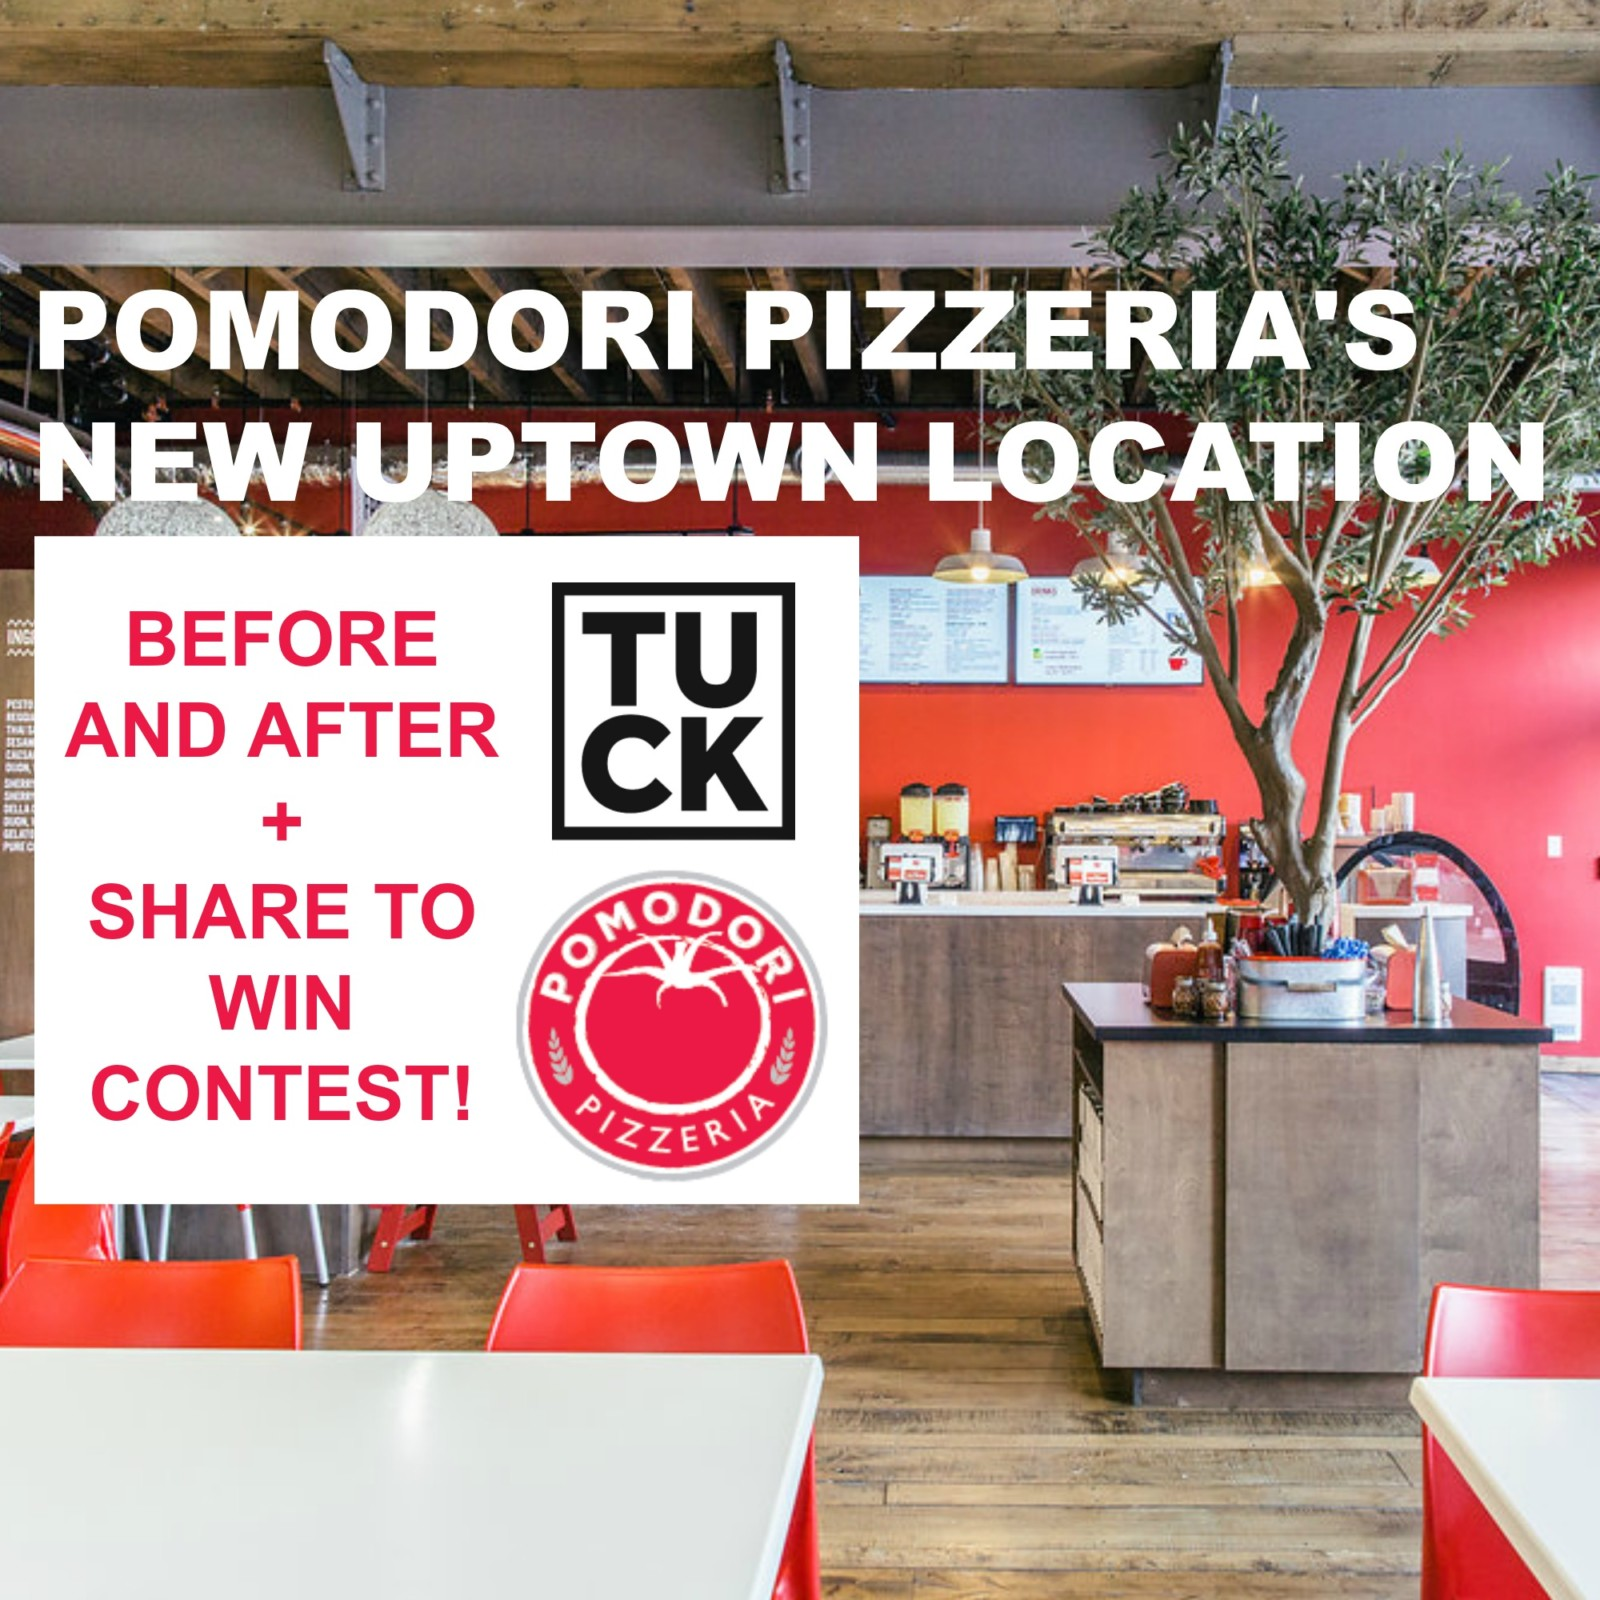 Pomodori Pizzeria Before After Title Image